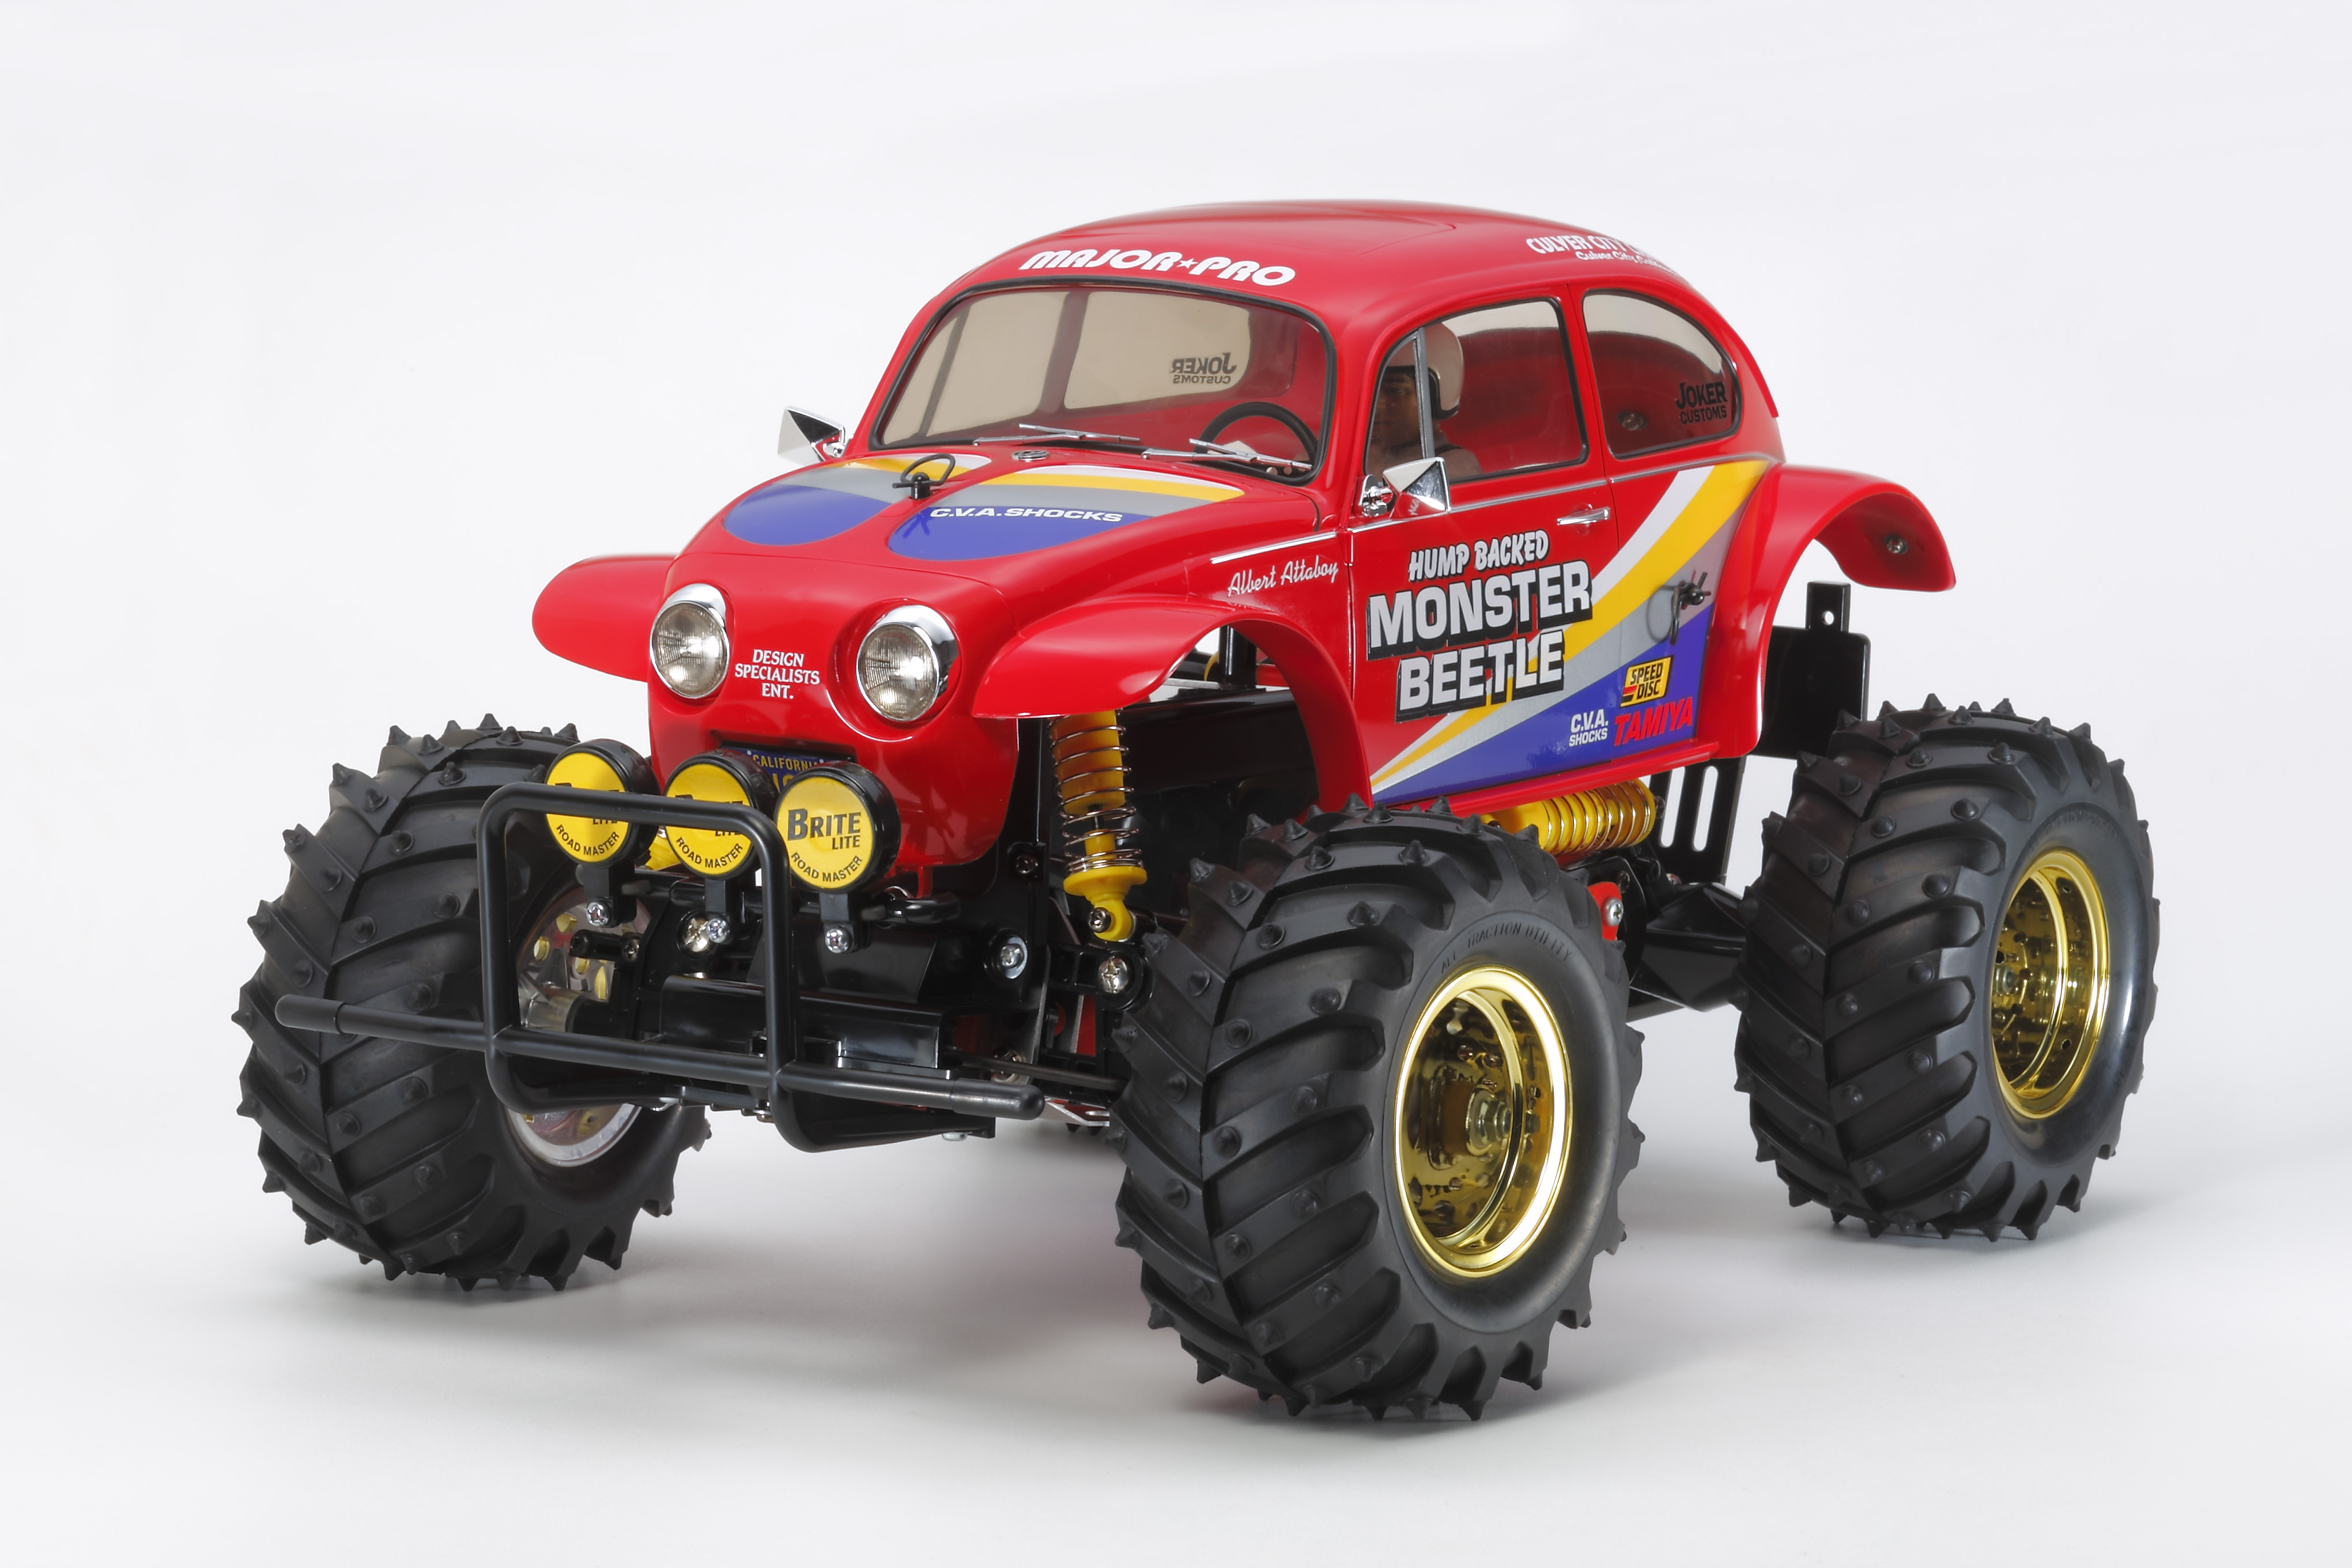 custom rc cars with The Return Of Albert Attaboy Tamiya Monster Beetle Reissue Announced on Andrea Barber Pictures likewise Radio Controlled Car Custom Spoiler in addition Watch furthermore Image 2047238 together with 1937crc.